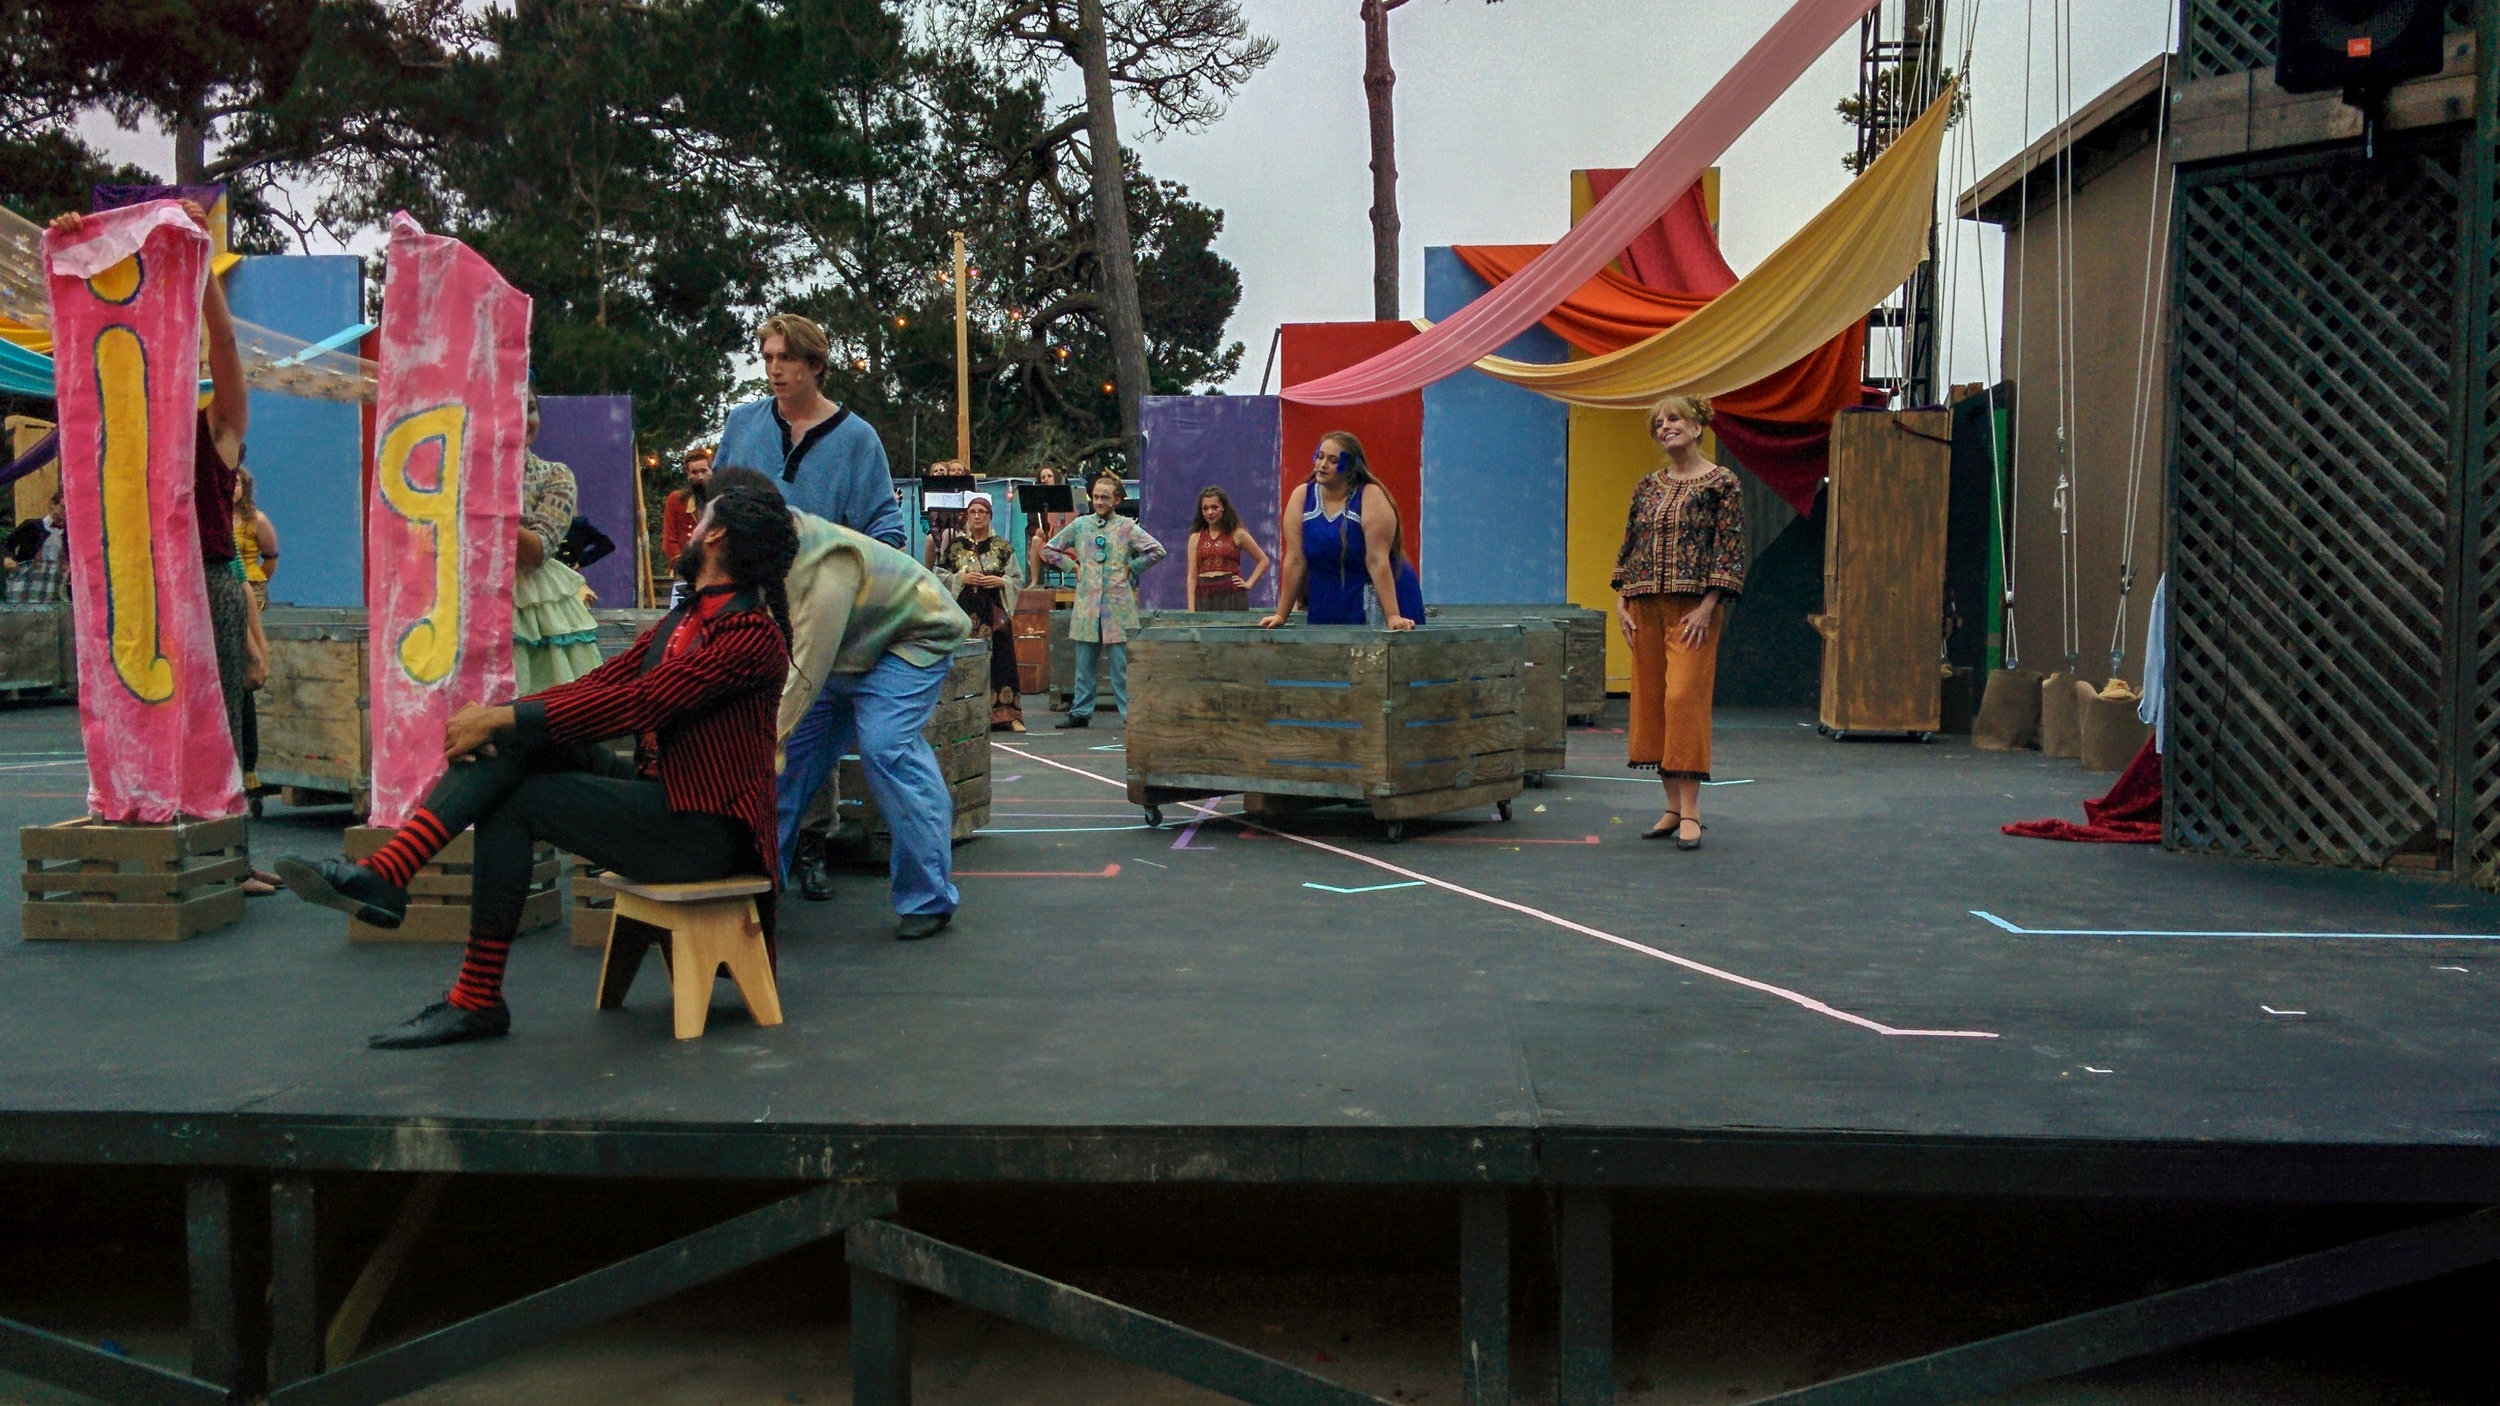 Cast of Pippin 2017 bring the play's opening to their first audience with smiles and laughter.